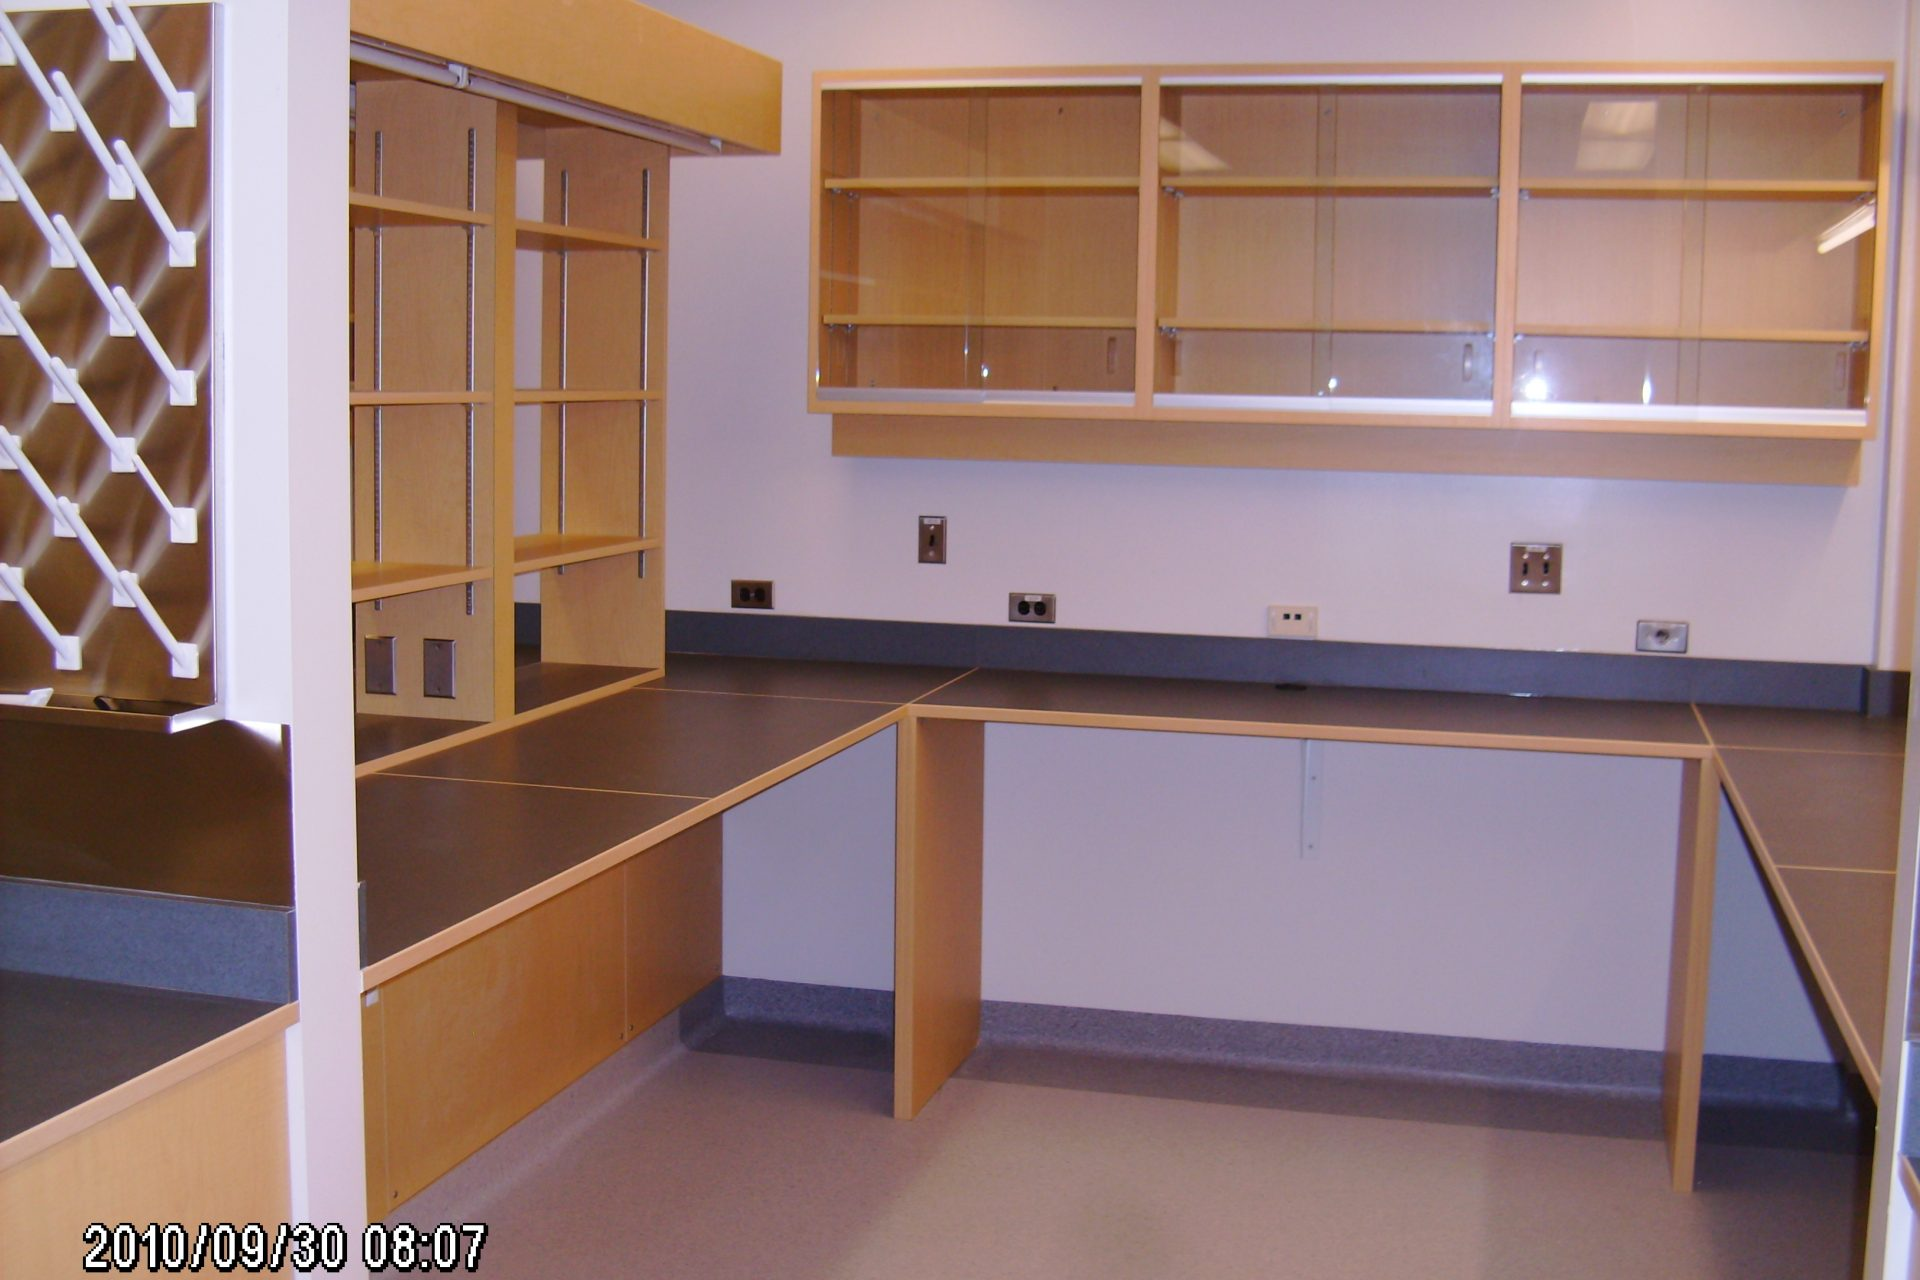 University of Manitoba Anatomy Lab 3